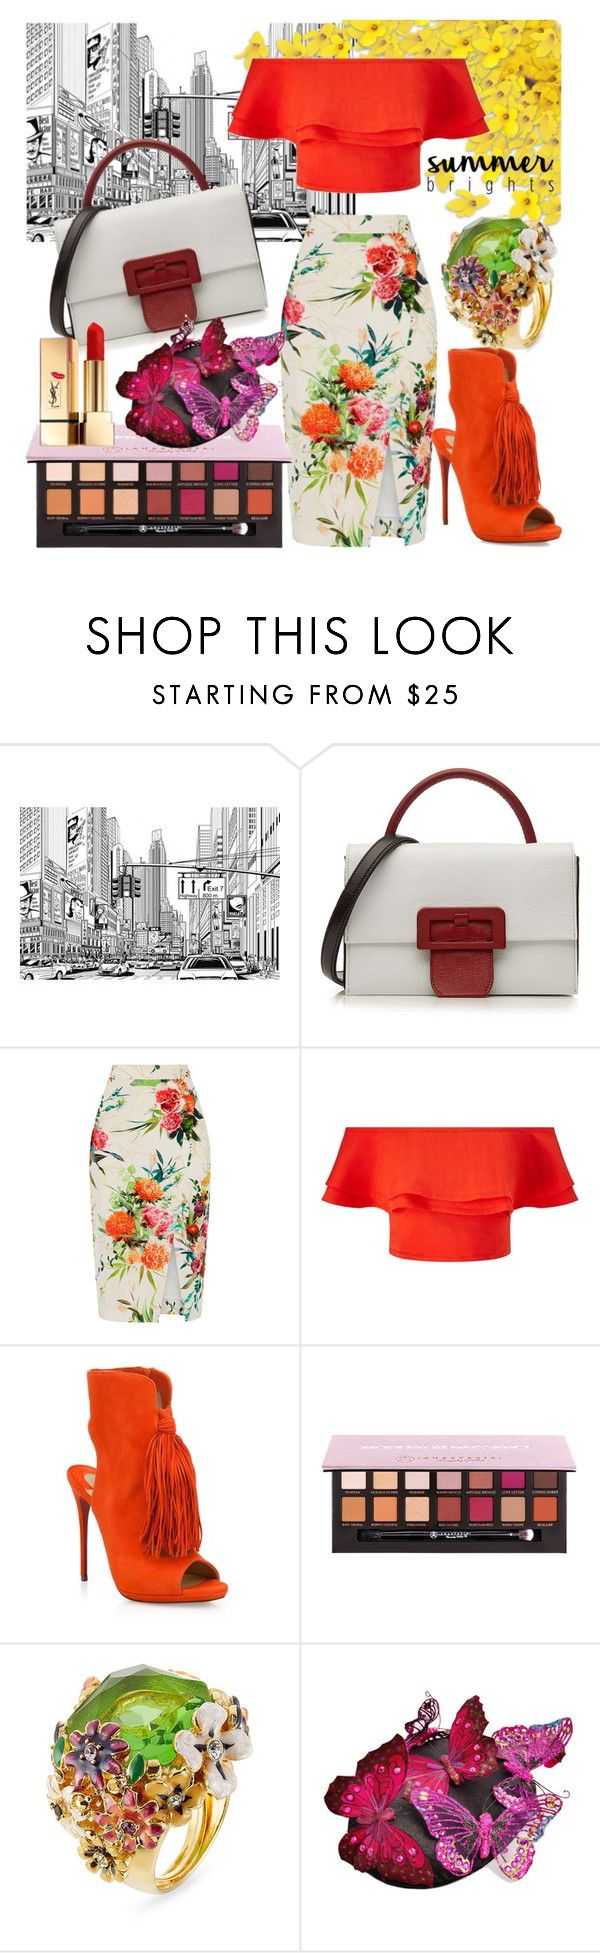 """Orange Bardot Top"" by fablygent ❤ liked on Polyvore featuring Maison Margiela, Oasis, Miss Selfridge, Christian Louboutin, Anastasia Beverly Hills, Kenneth Jay Lane, Bundle MacLaren Millinery, Yves Saint Laurent and summerbrights"